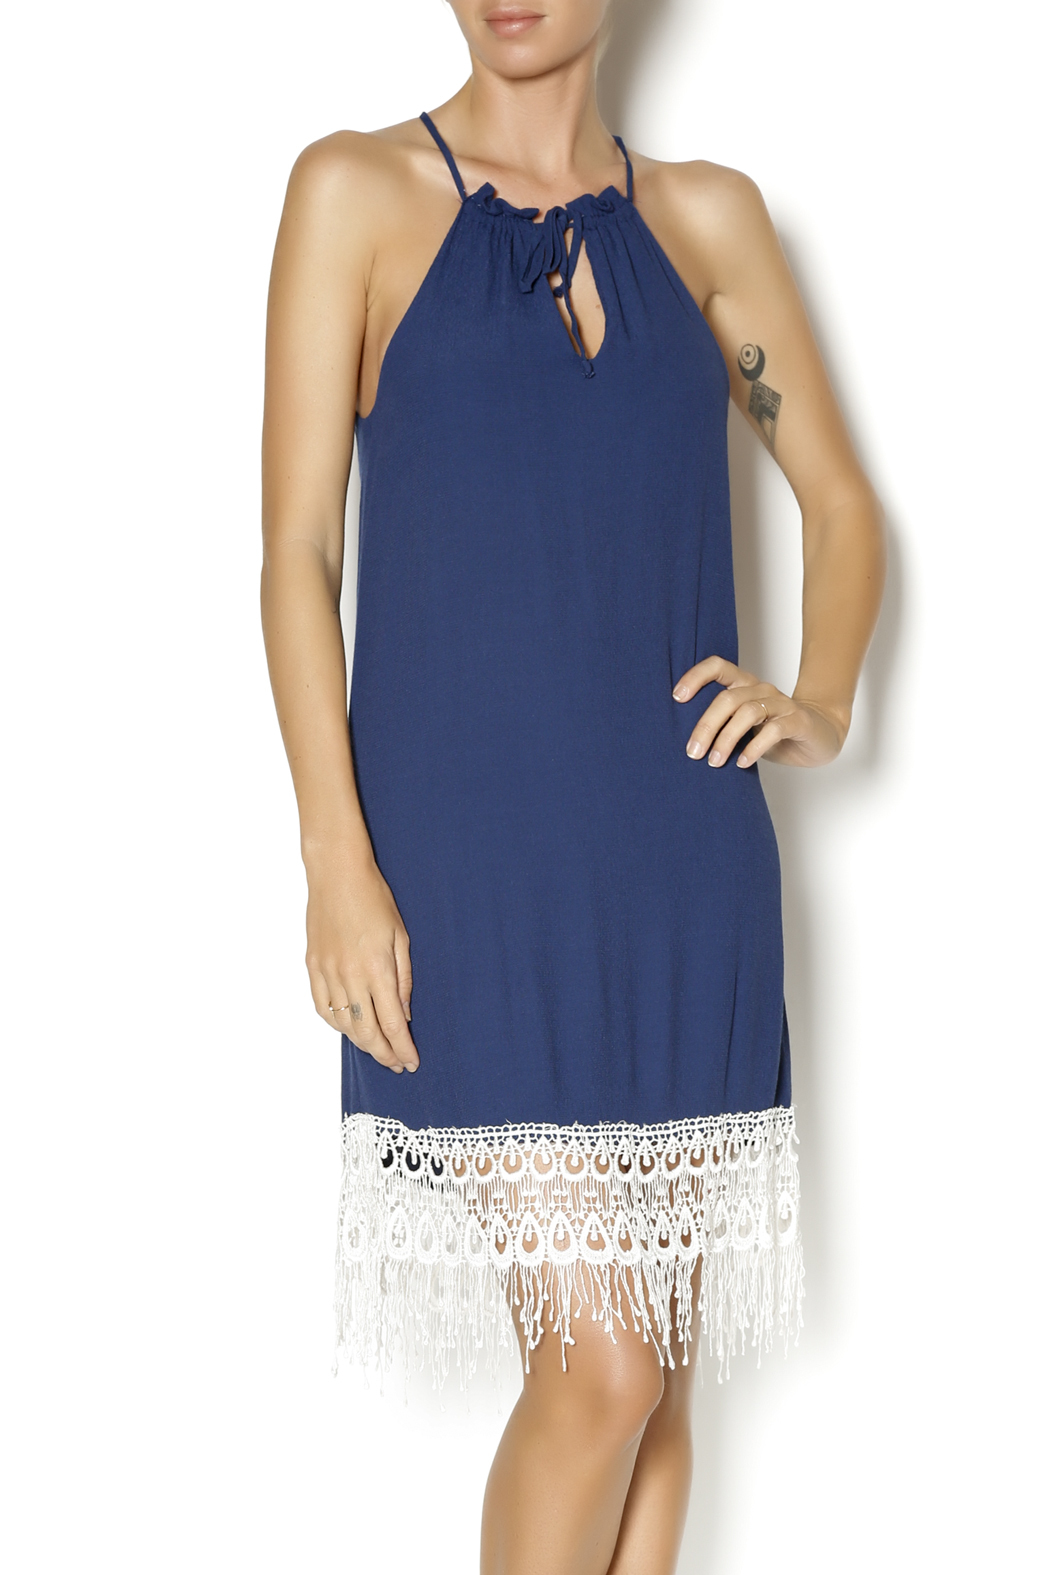 Lucy Love Navy Halter Dress - Main Image